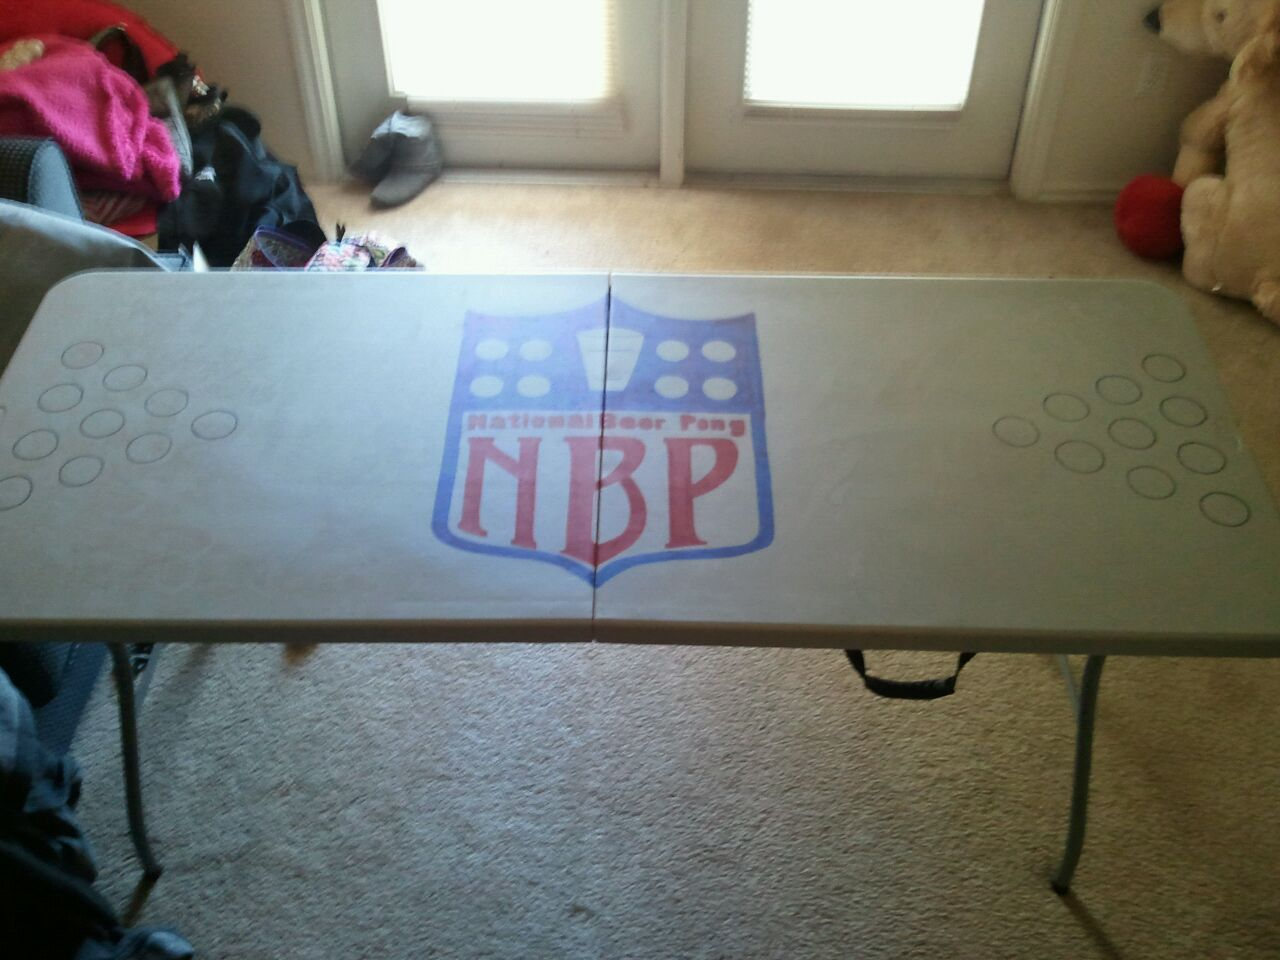 Homemade beer pong table - Nbp National Beer Pong Homemade Beer Pong Table